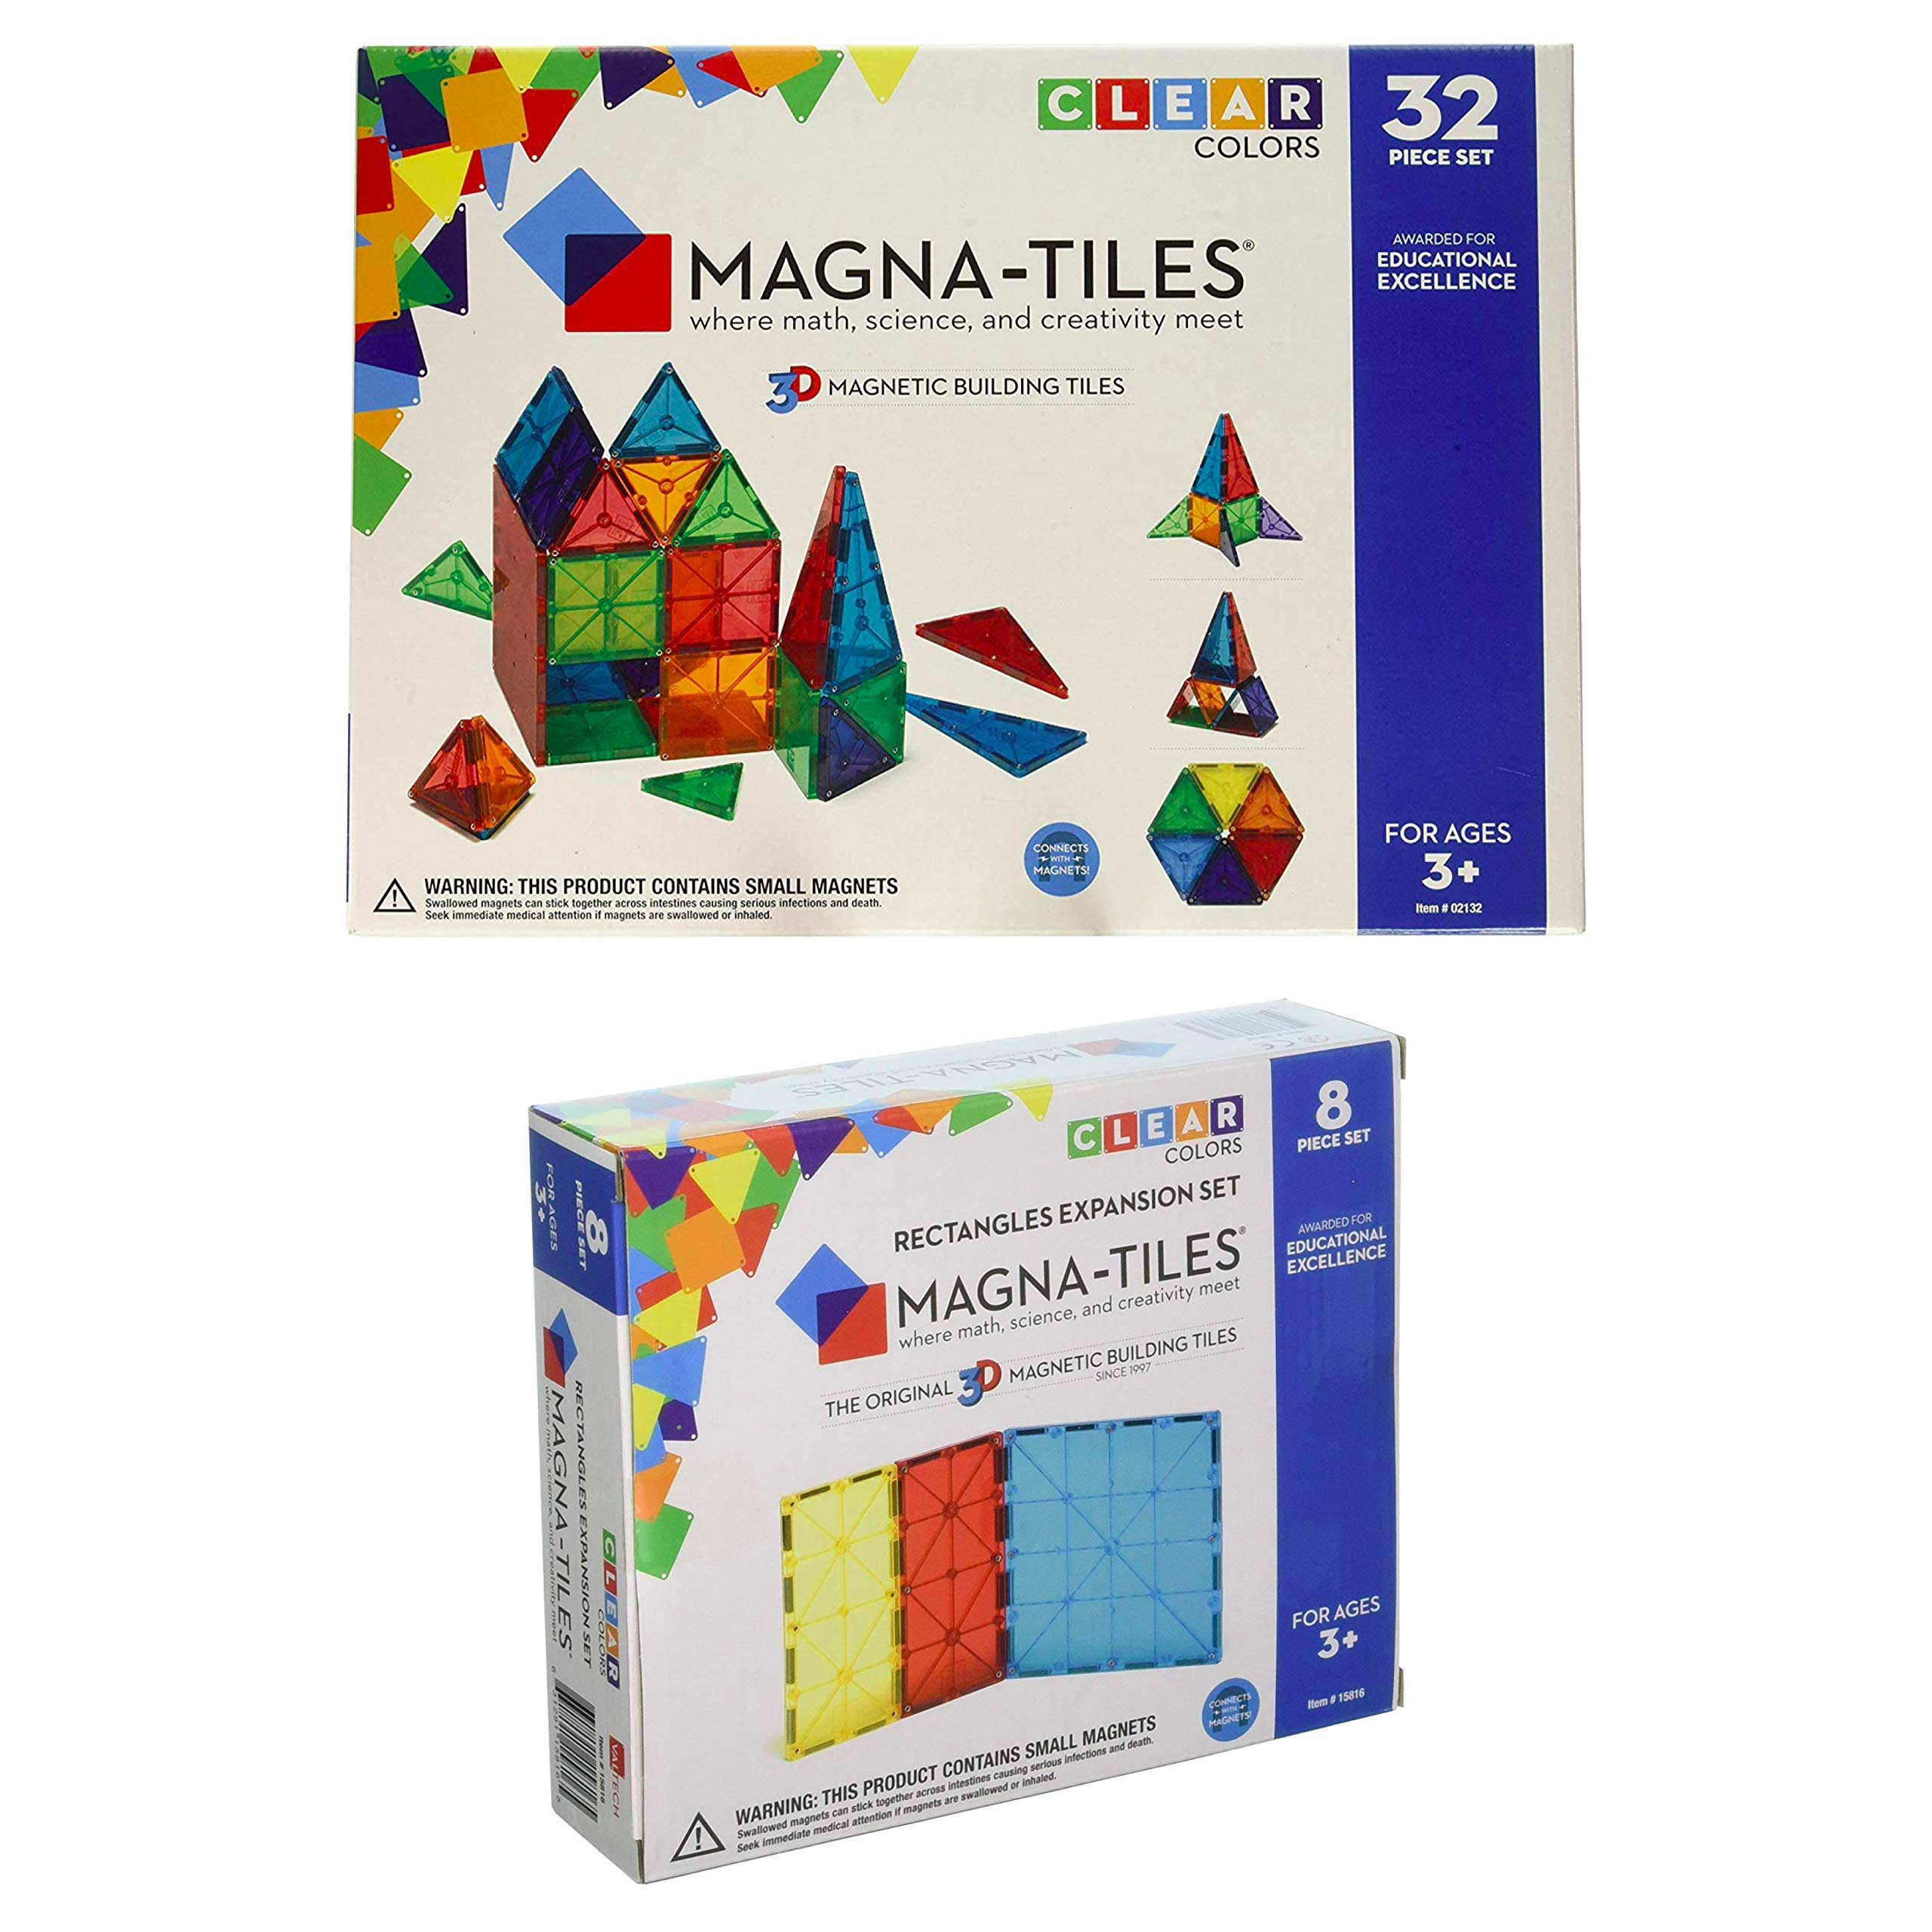 Magna-Tiles 32-Piece Clear Colors Set - The Original, Award-Winning Magnetic Building Tiles - Creativity and Educational - STEM Approved Bundled 8-Piece Rectangles Expansion Set - The by Magna-Tiles (Image #1)